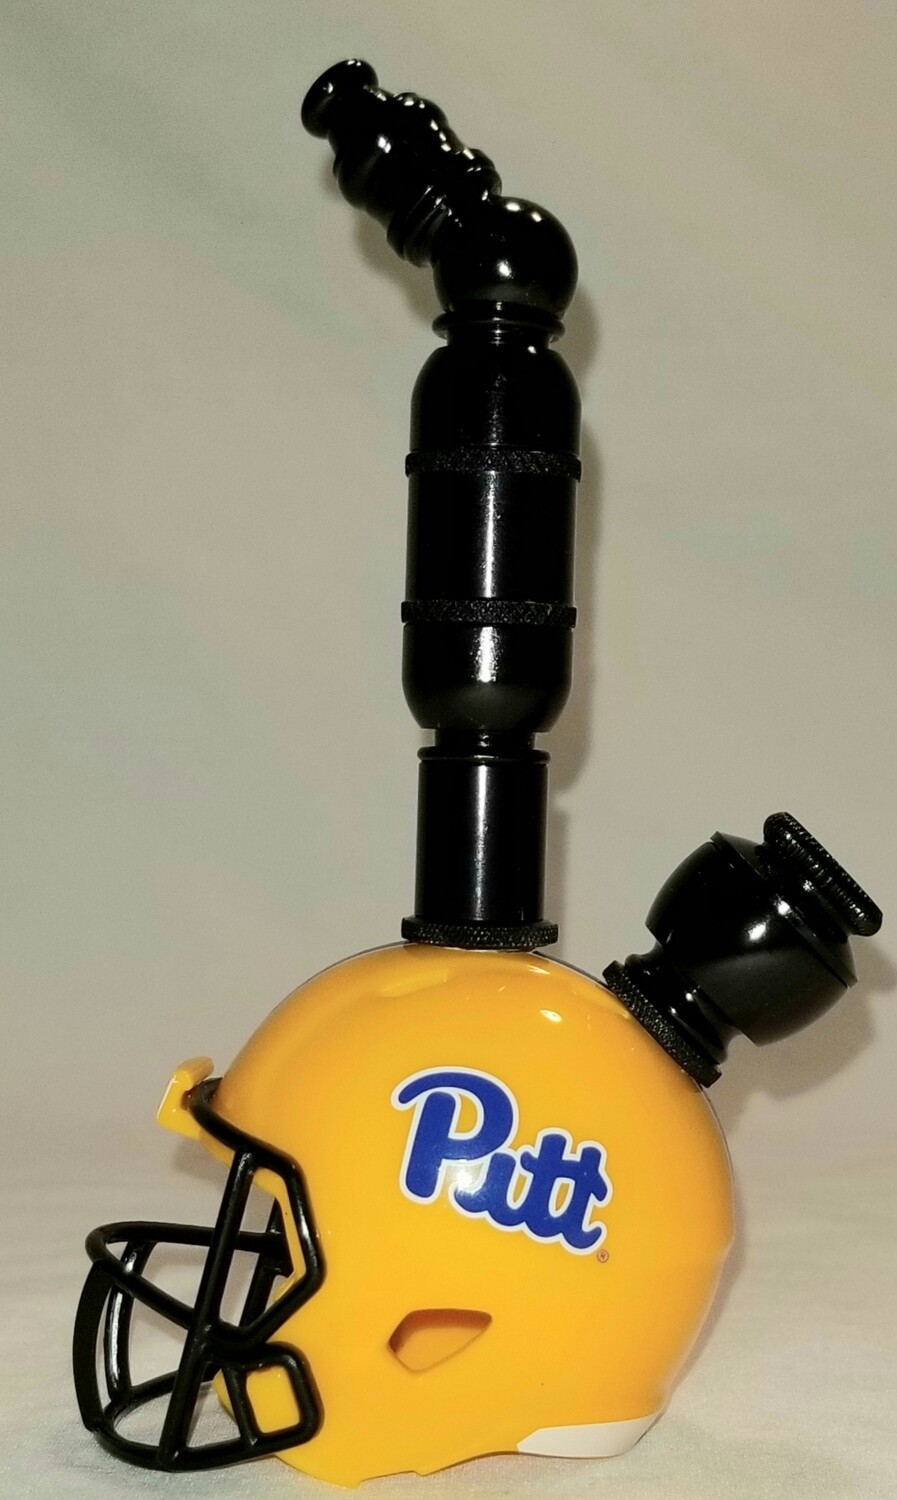 """PIT PANTHERS 2021 """"BAD ASS"""" FOOTBALL HELMET SMOKING PIPE Upright/Black Anodized/Yellow"""